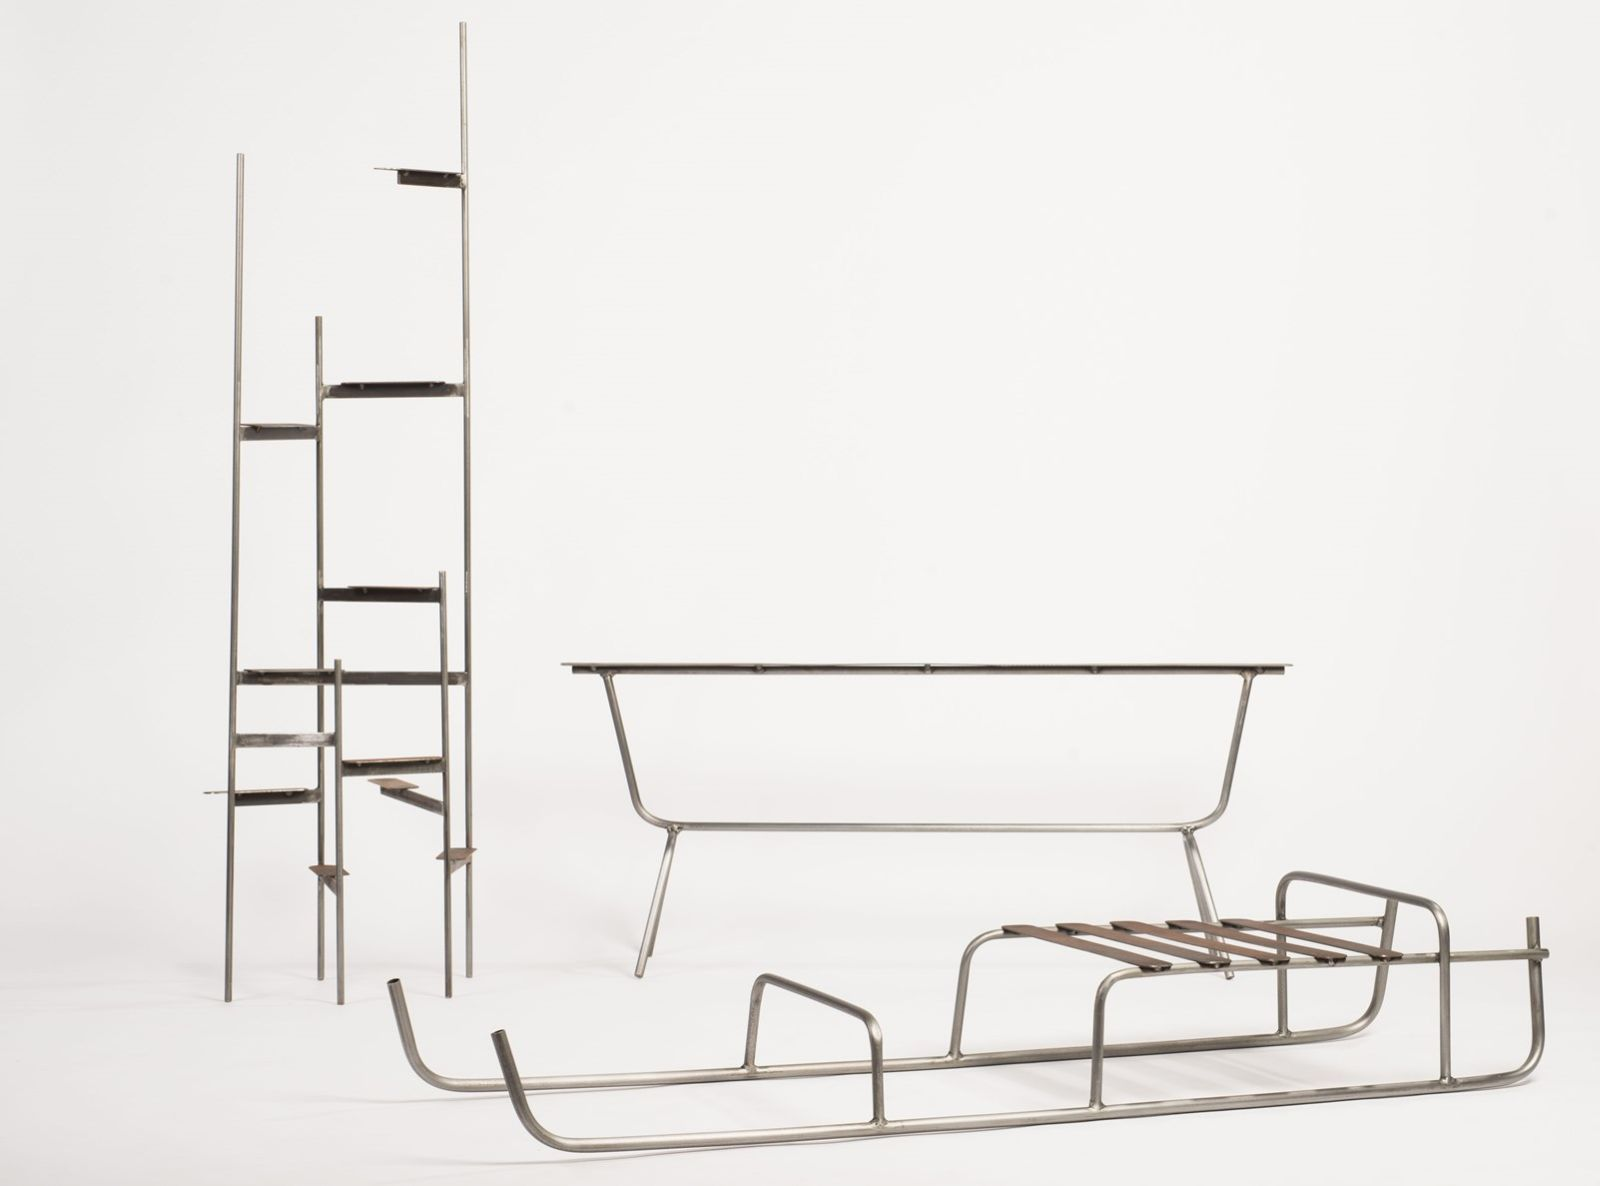 Neil Nenner's shelves, bench and sled. Photo by Shachar Fleischmann